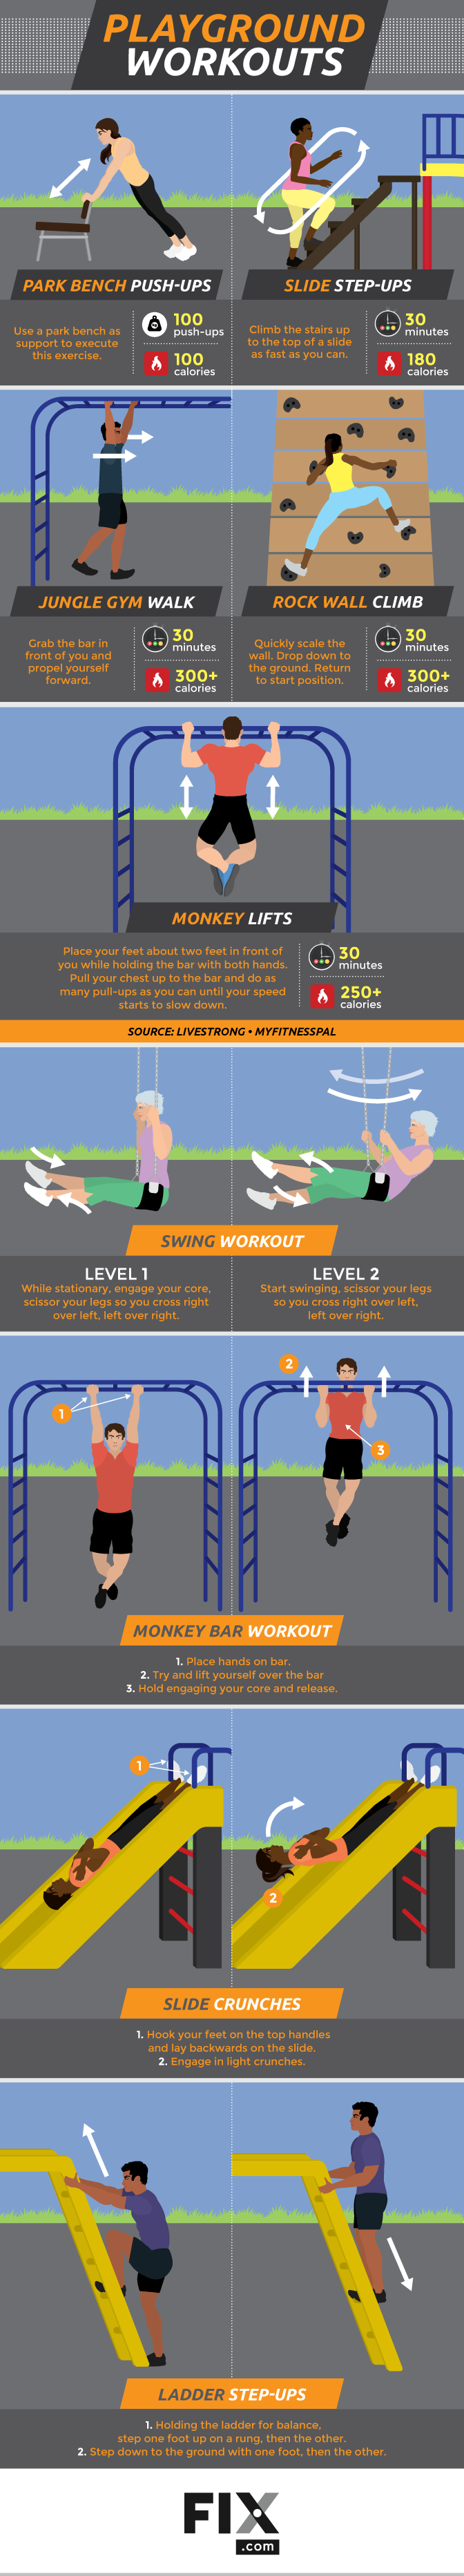 Playground Workouts #Infographic